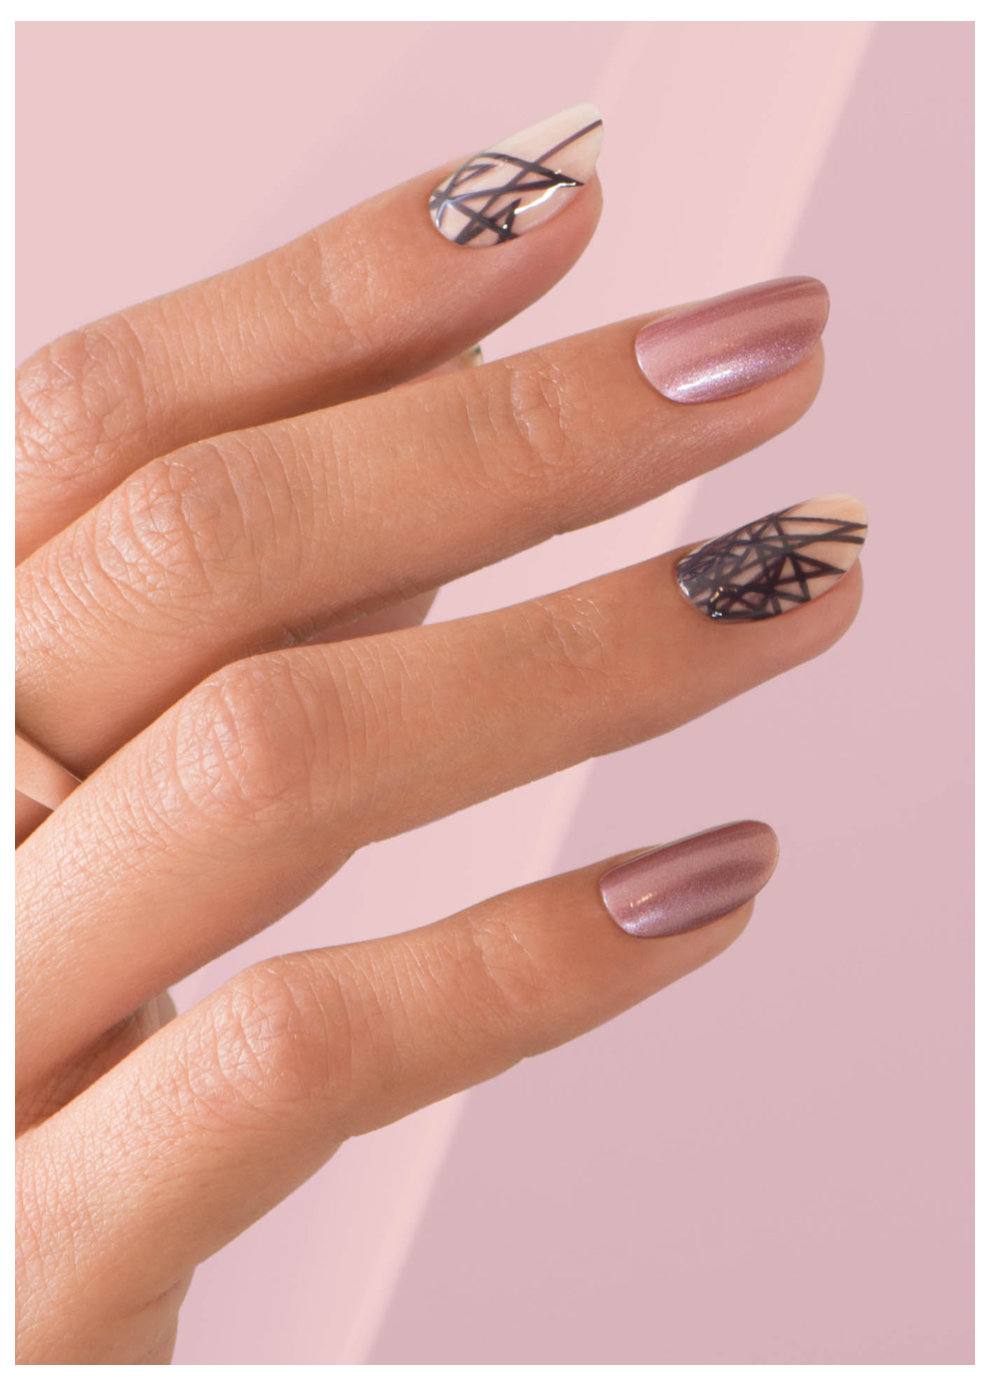 Nail Art Designs And Nail Polishes For French Manicure: Nail Art Gallery